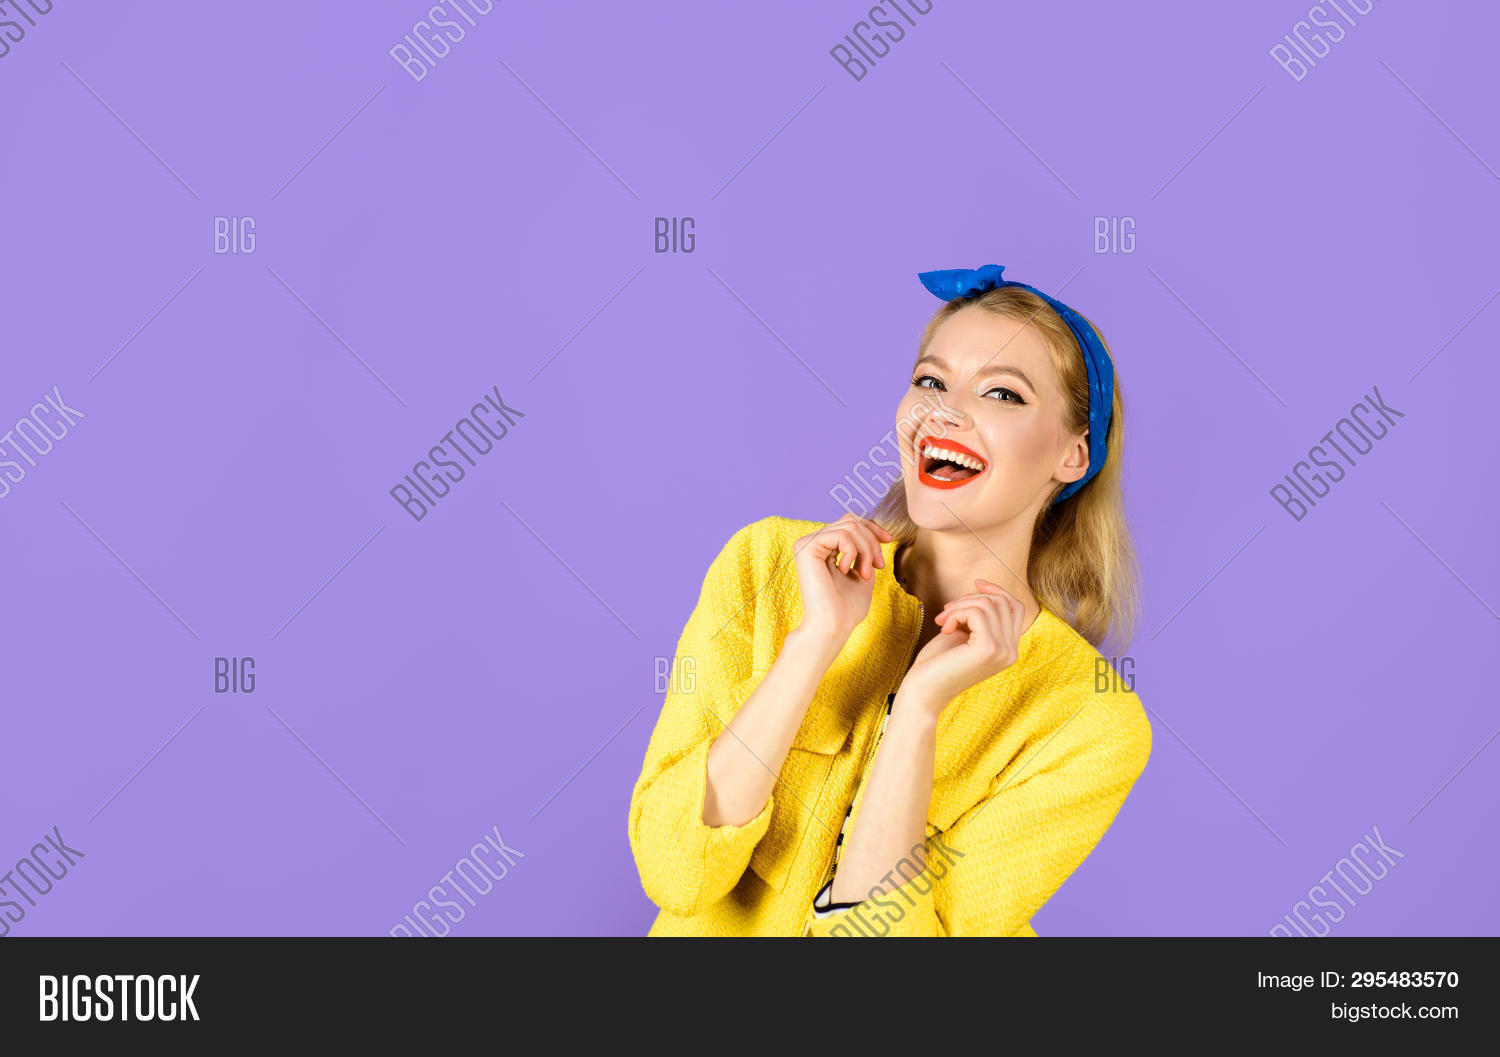 Smiling Woman Dressed In Pin-up Style. Retro Fashion And Vintage Concept. Pin-up Girl. Expressive Fa